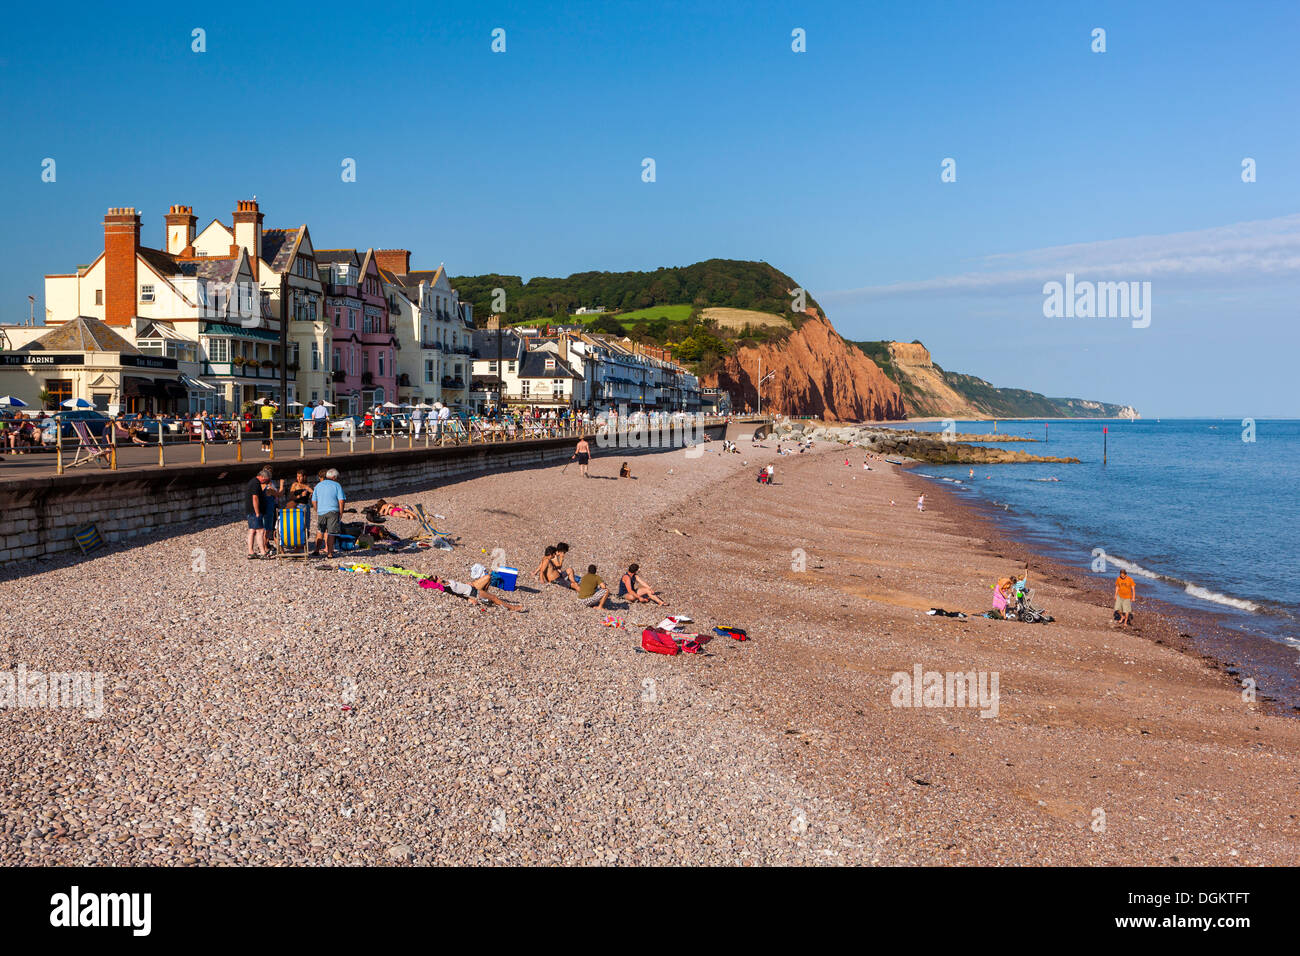 Jurassic Coast beach and cliffs at Sidmouth. - Stock Image